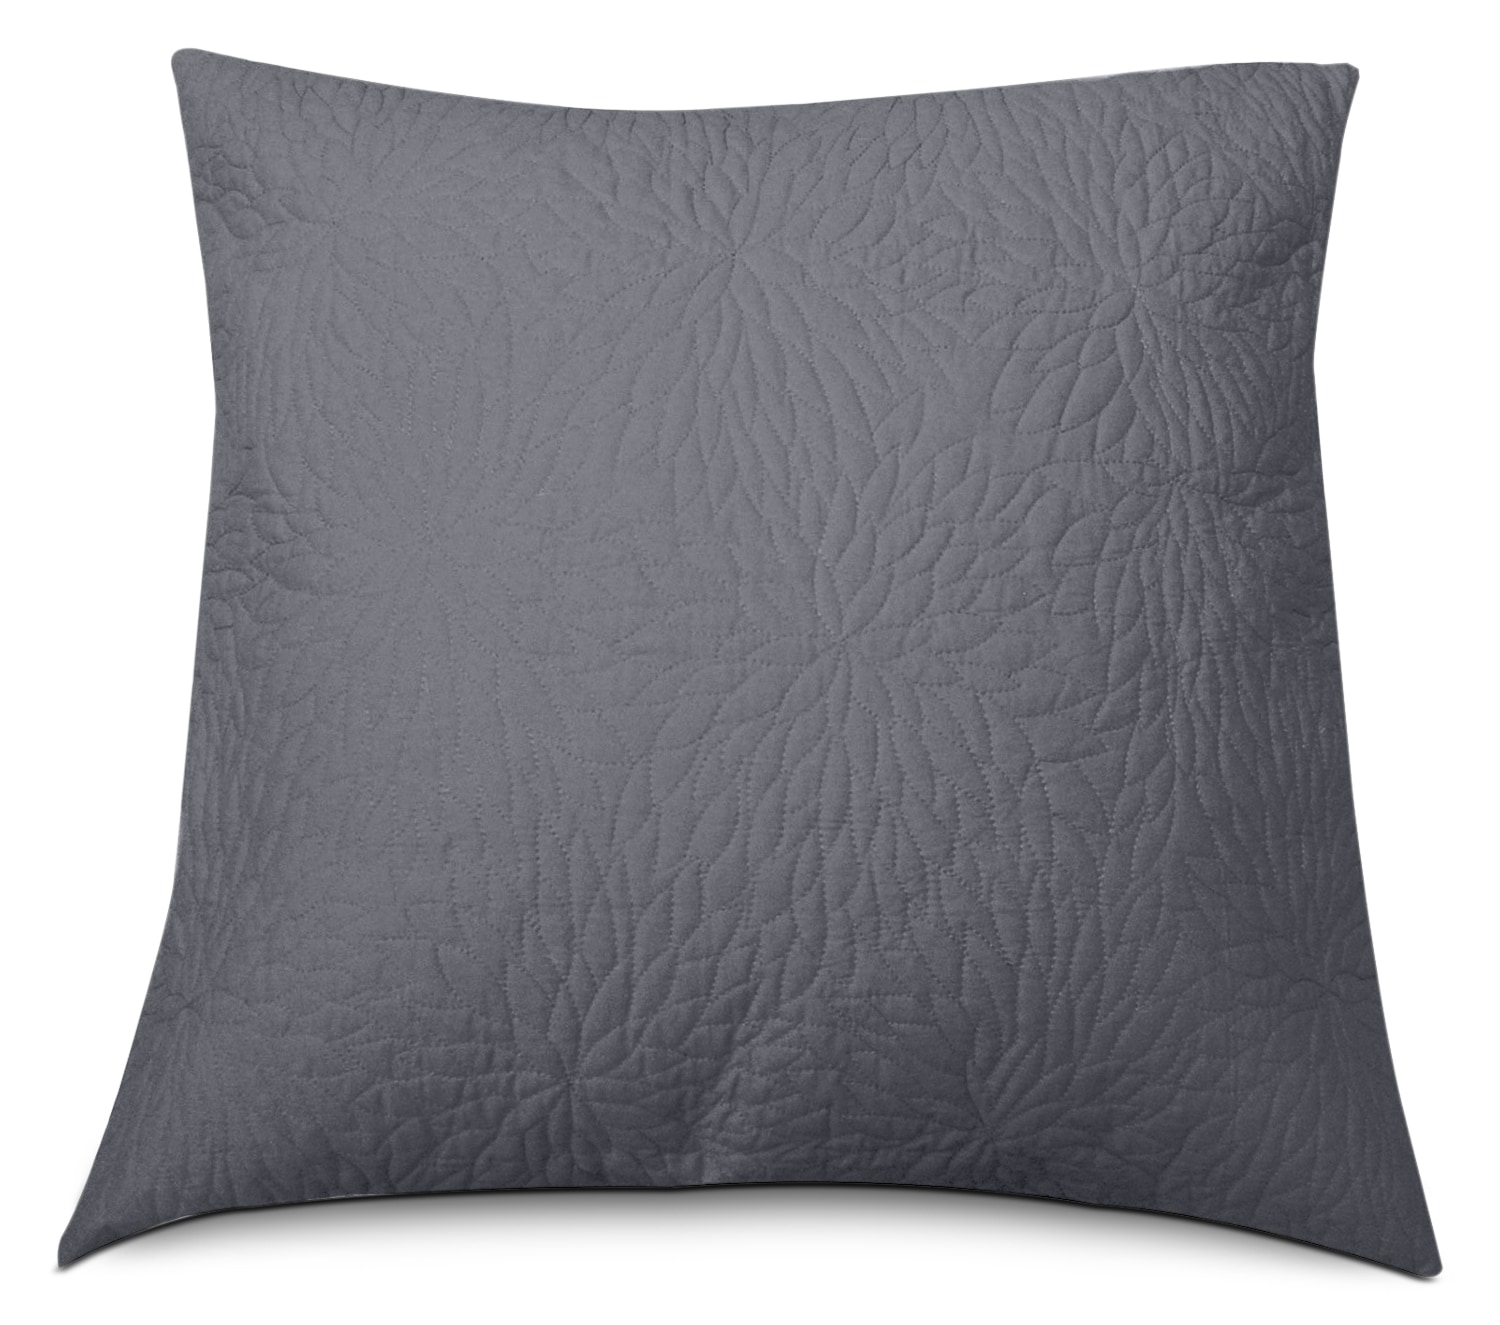 Mattresses and Bedding - Chrysanthemum Euro Cushion - Grey